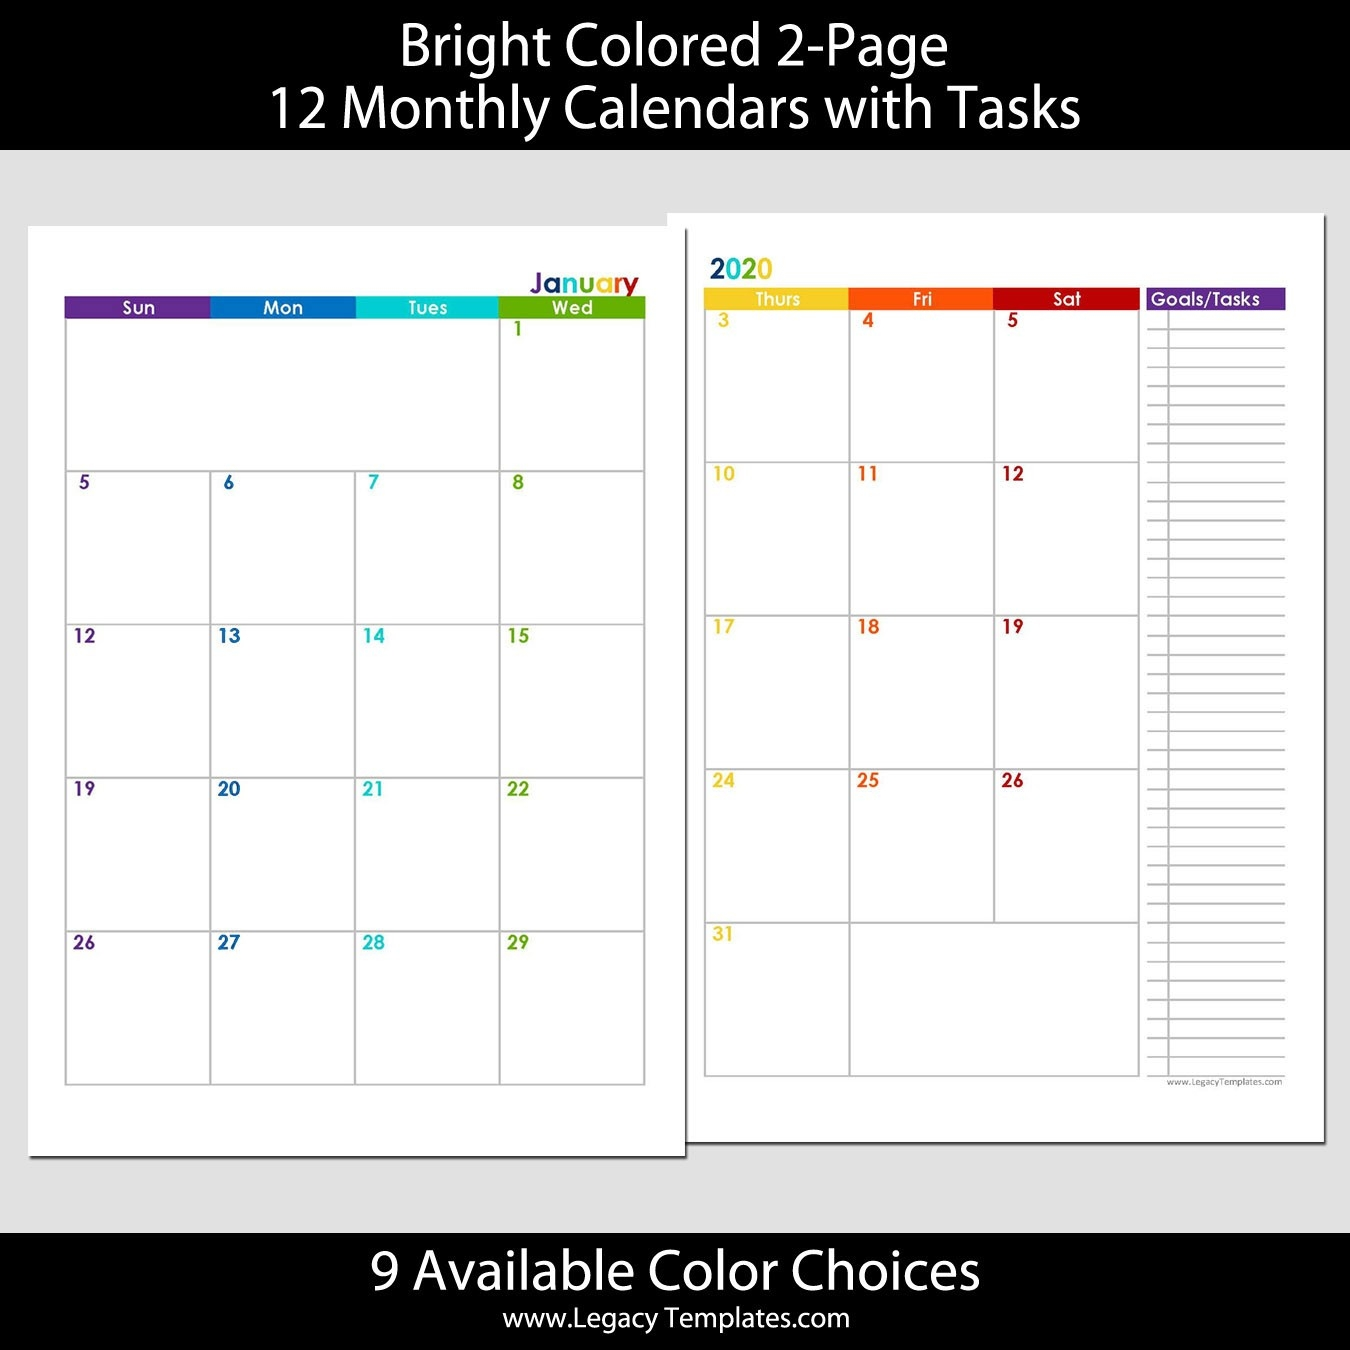 2020 12-Months 2-Page Calendar – A5 | Legacy Templates-2 Page Monthly Calendar Template 2020